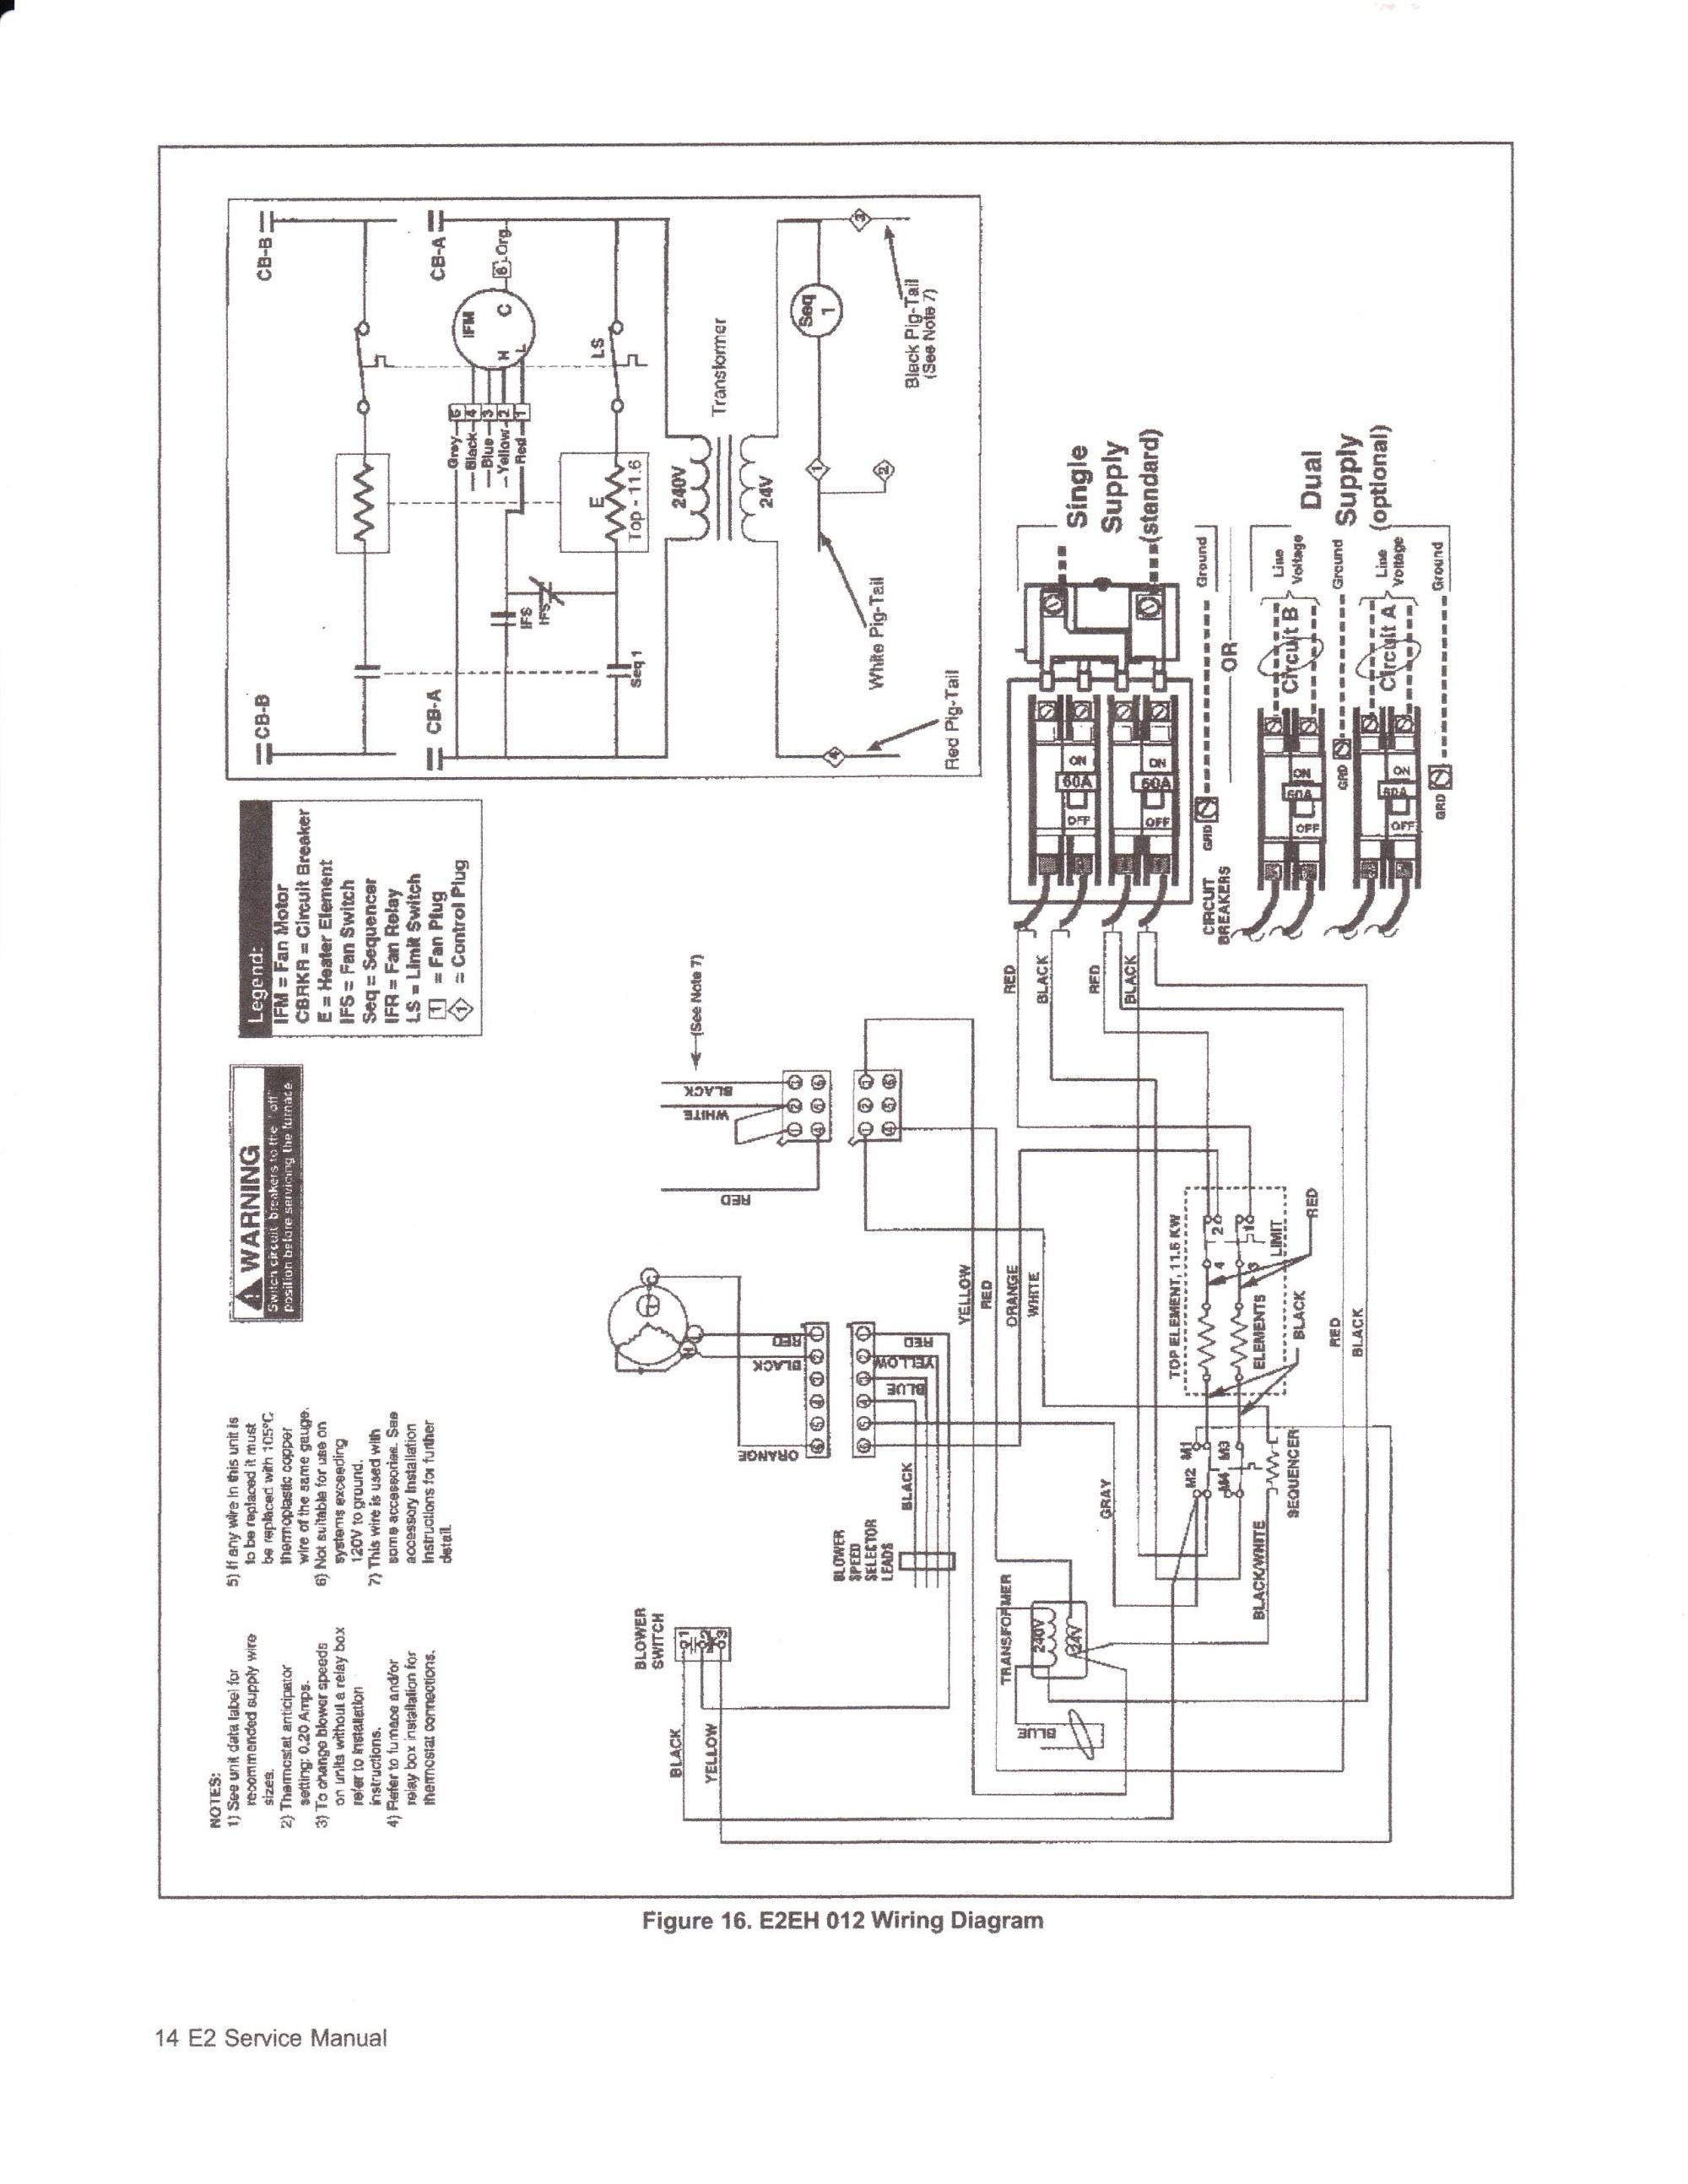 hight resolution of electric furnace thermostat wiring diagram free picture wiring janitrol thermostat wiring diagram free picture wiring library